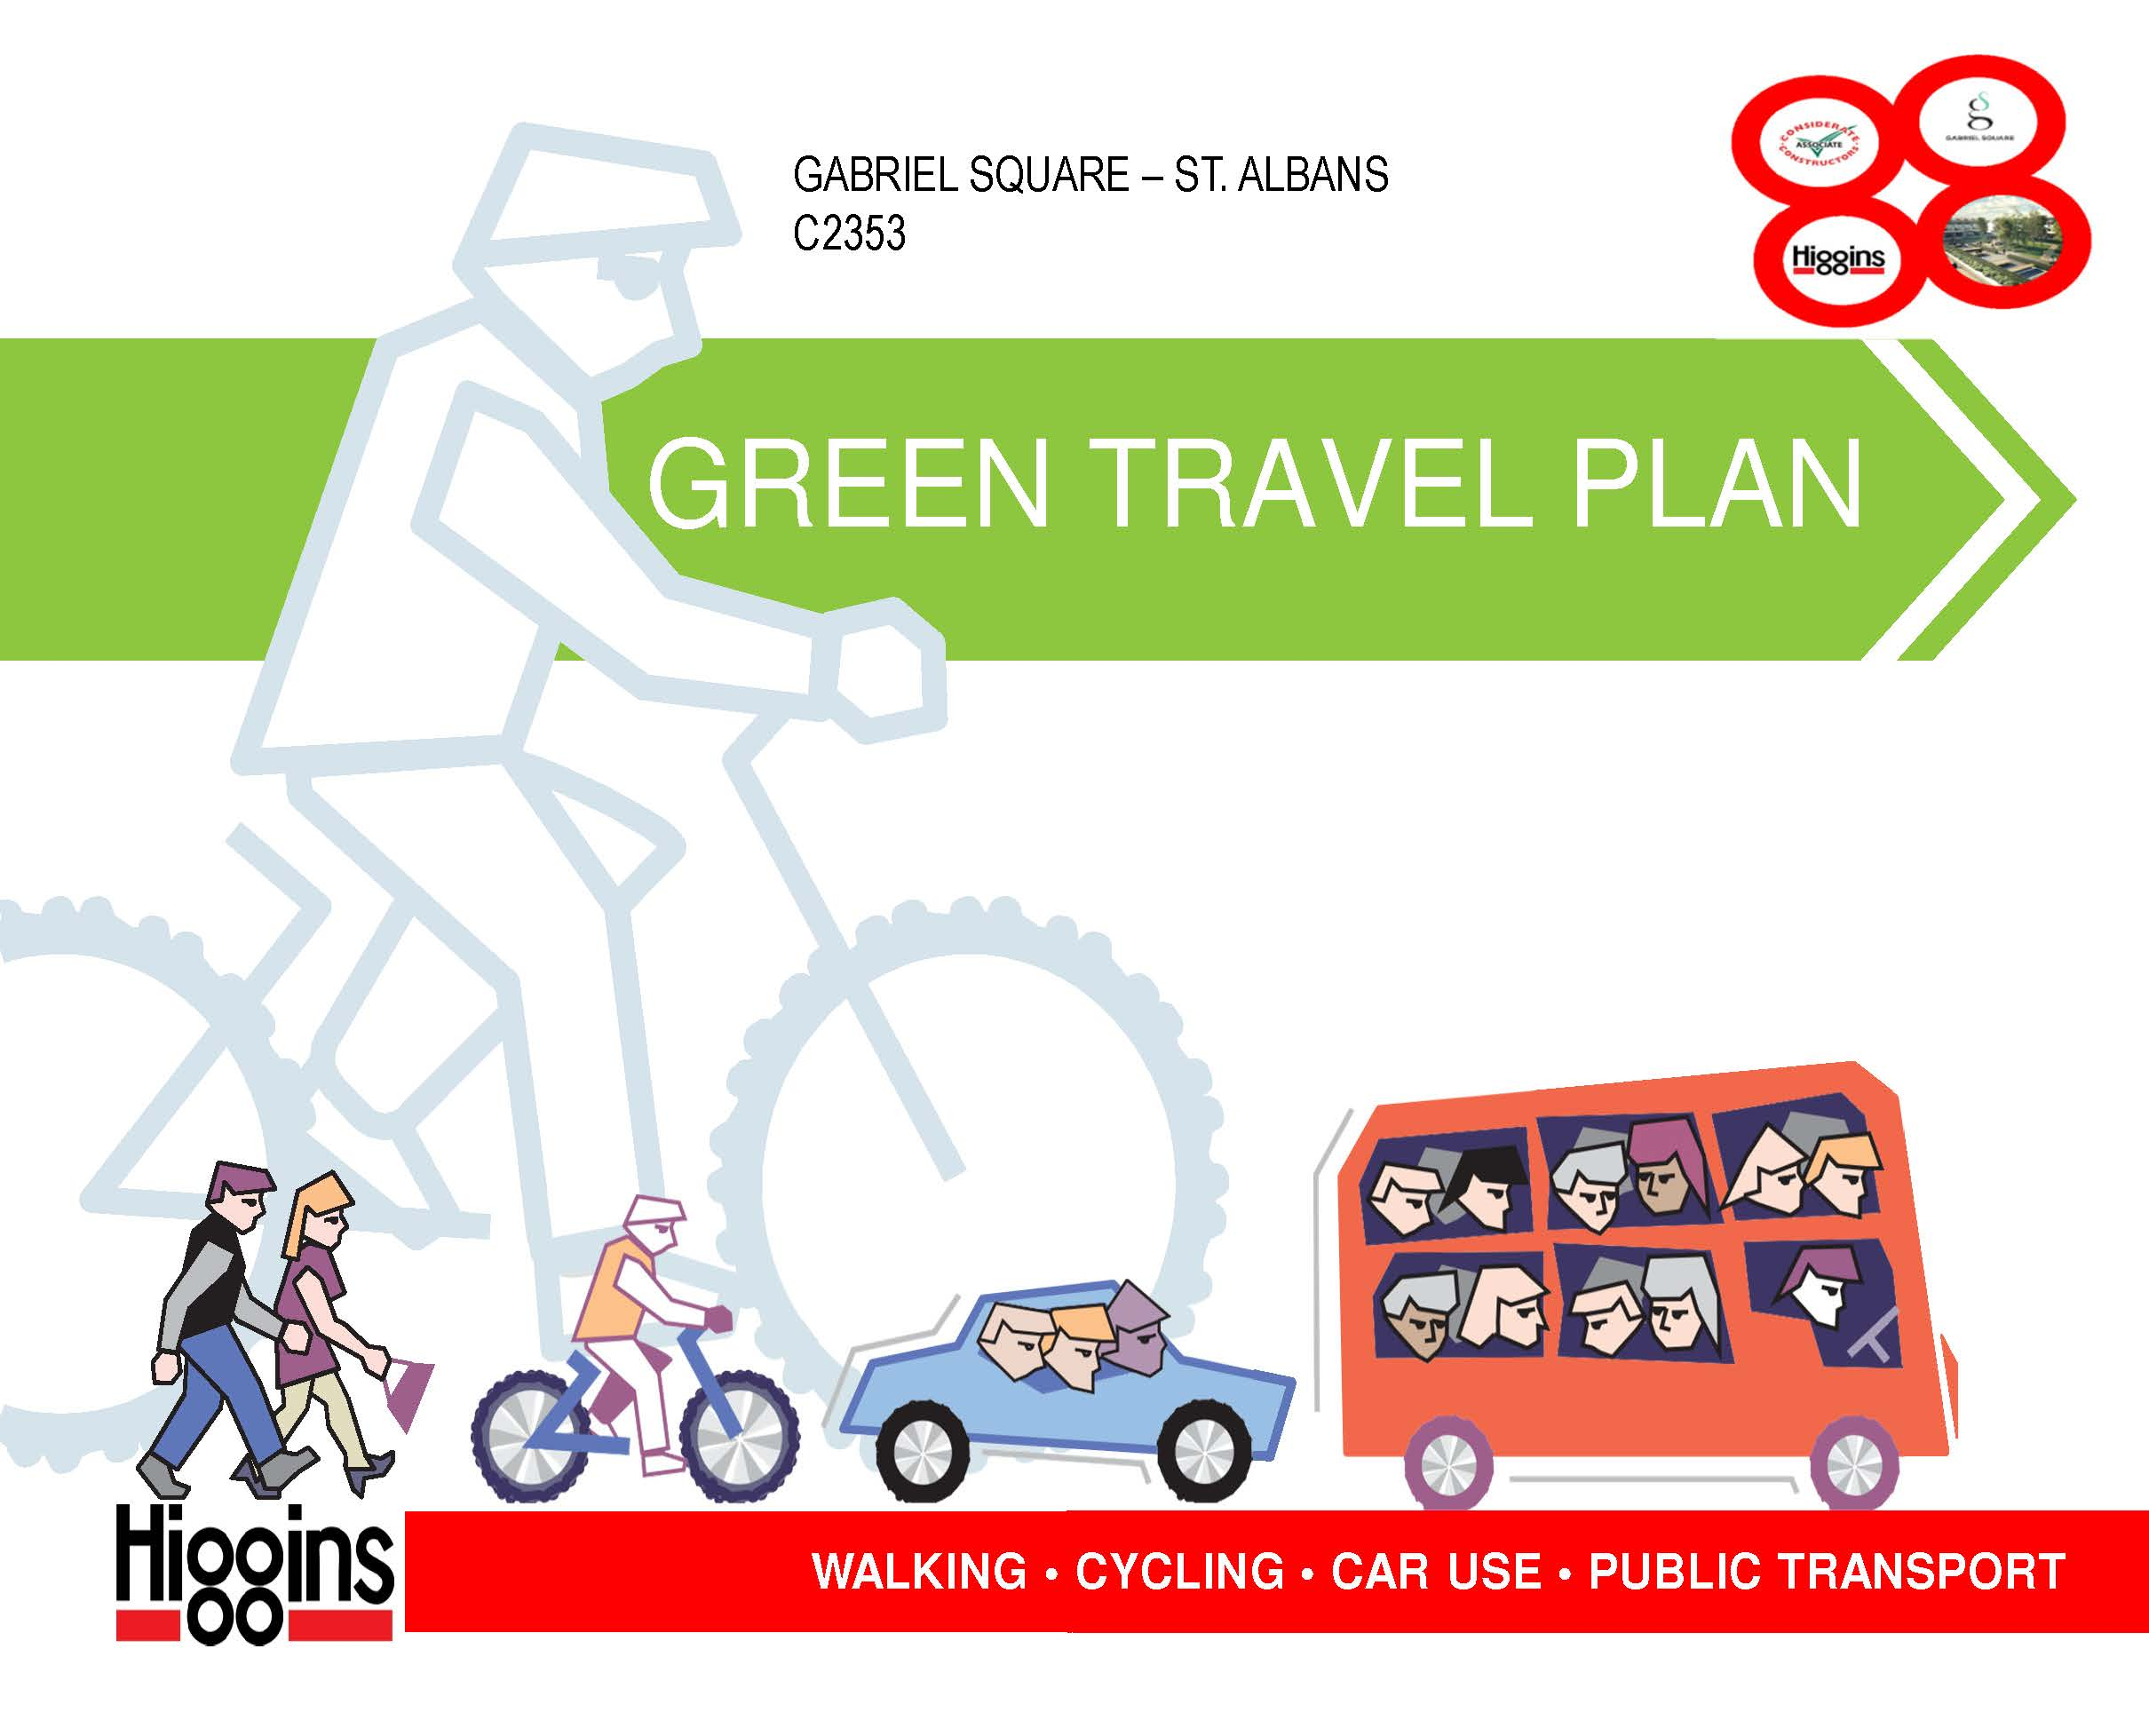 Green Travel Plan for Gabriel Square Best Practice Hub